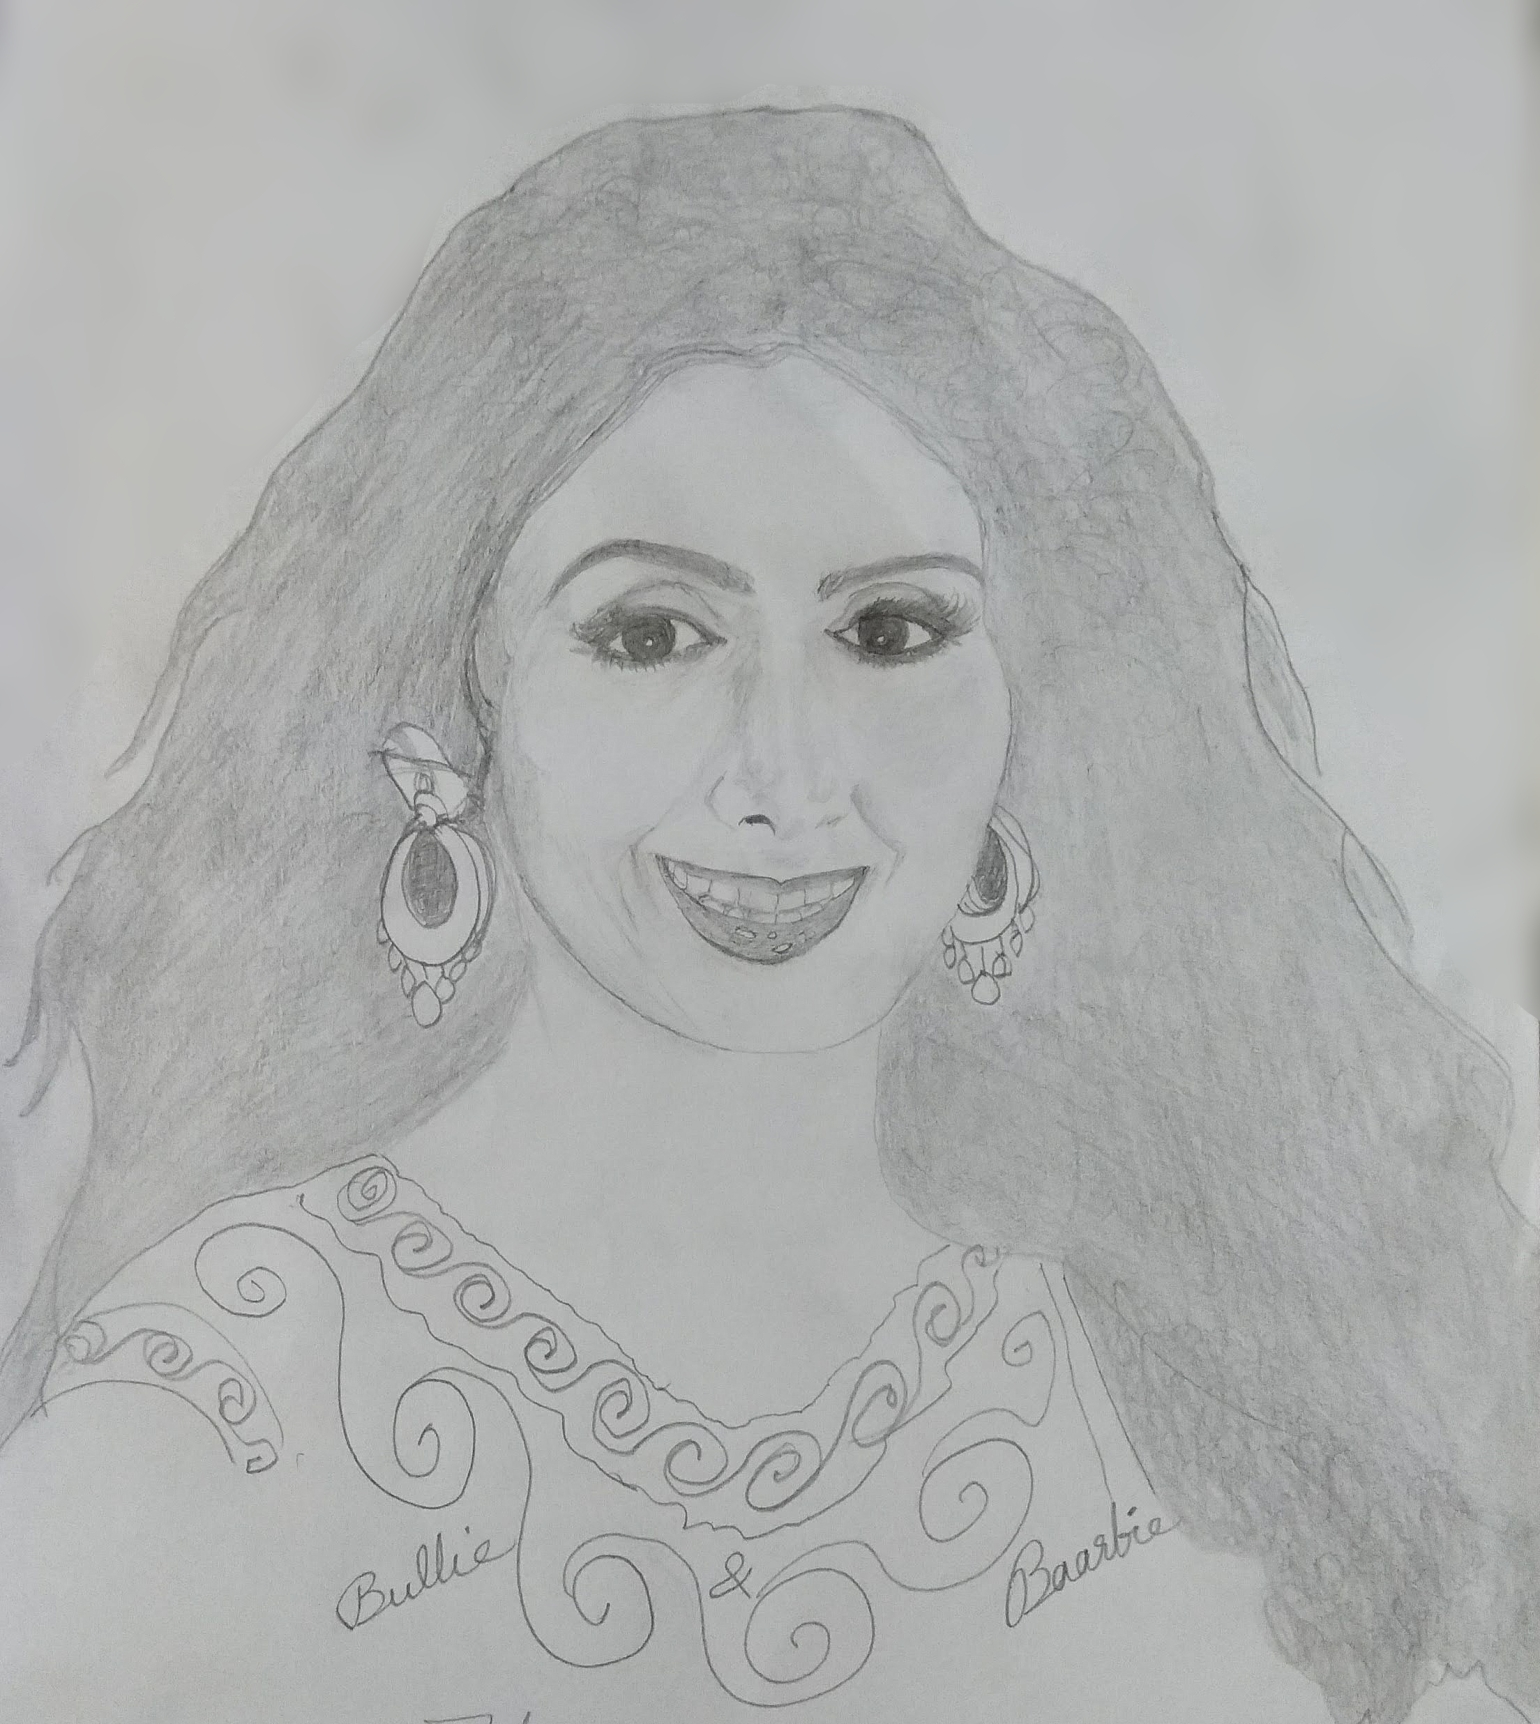 The Superstar - A Portrait of Sridevi Kapoor